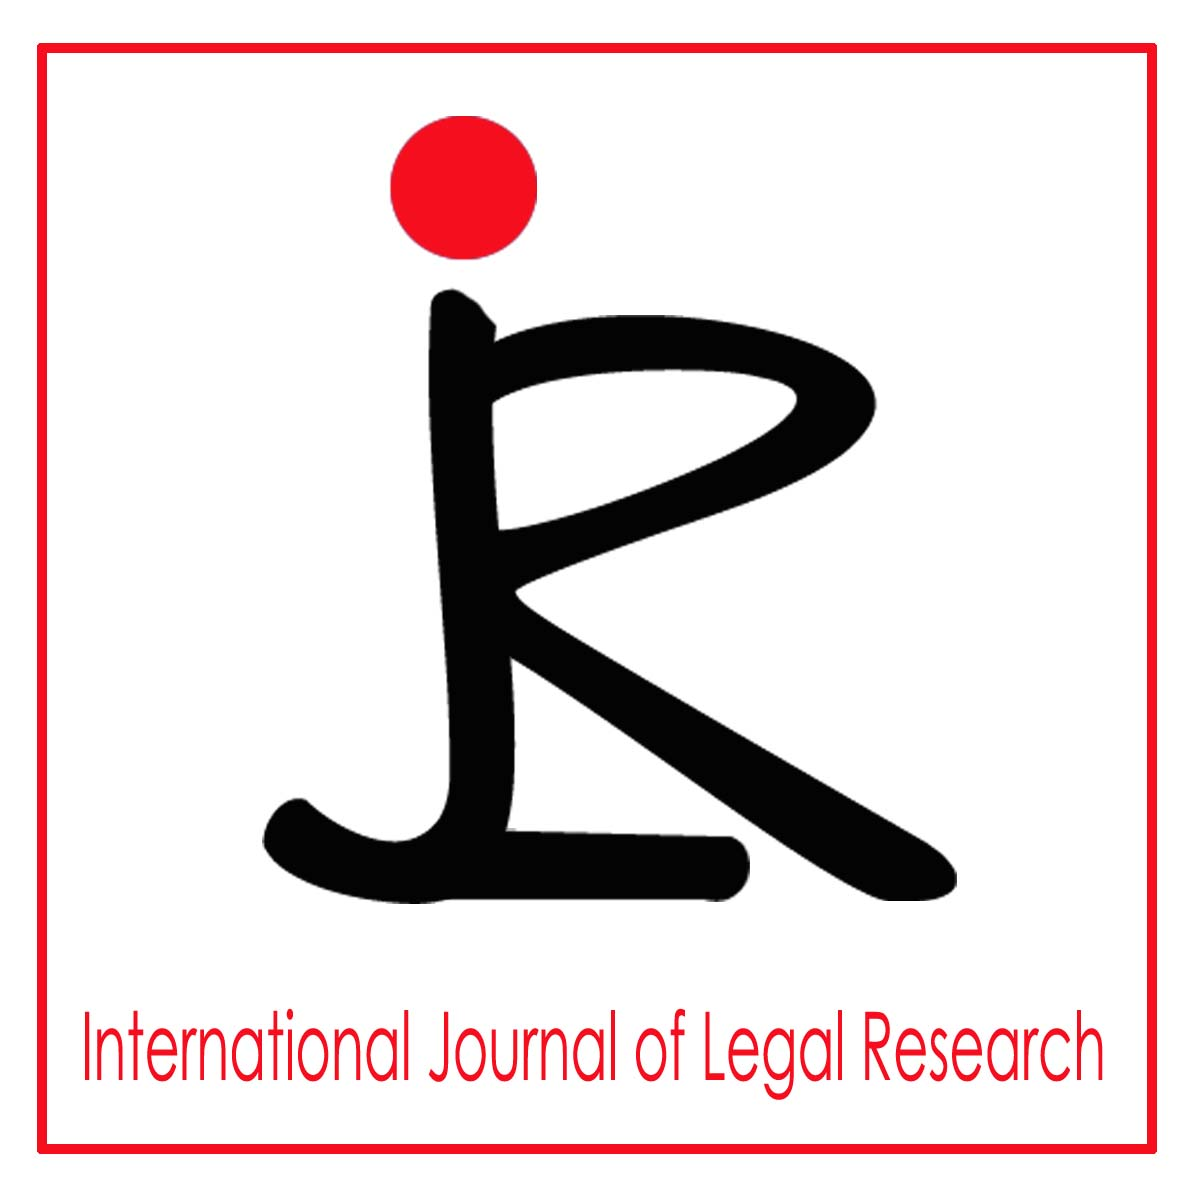 International Journal Legal Research Volume 5 Issue 2